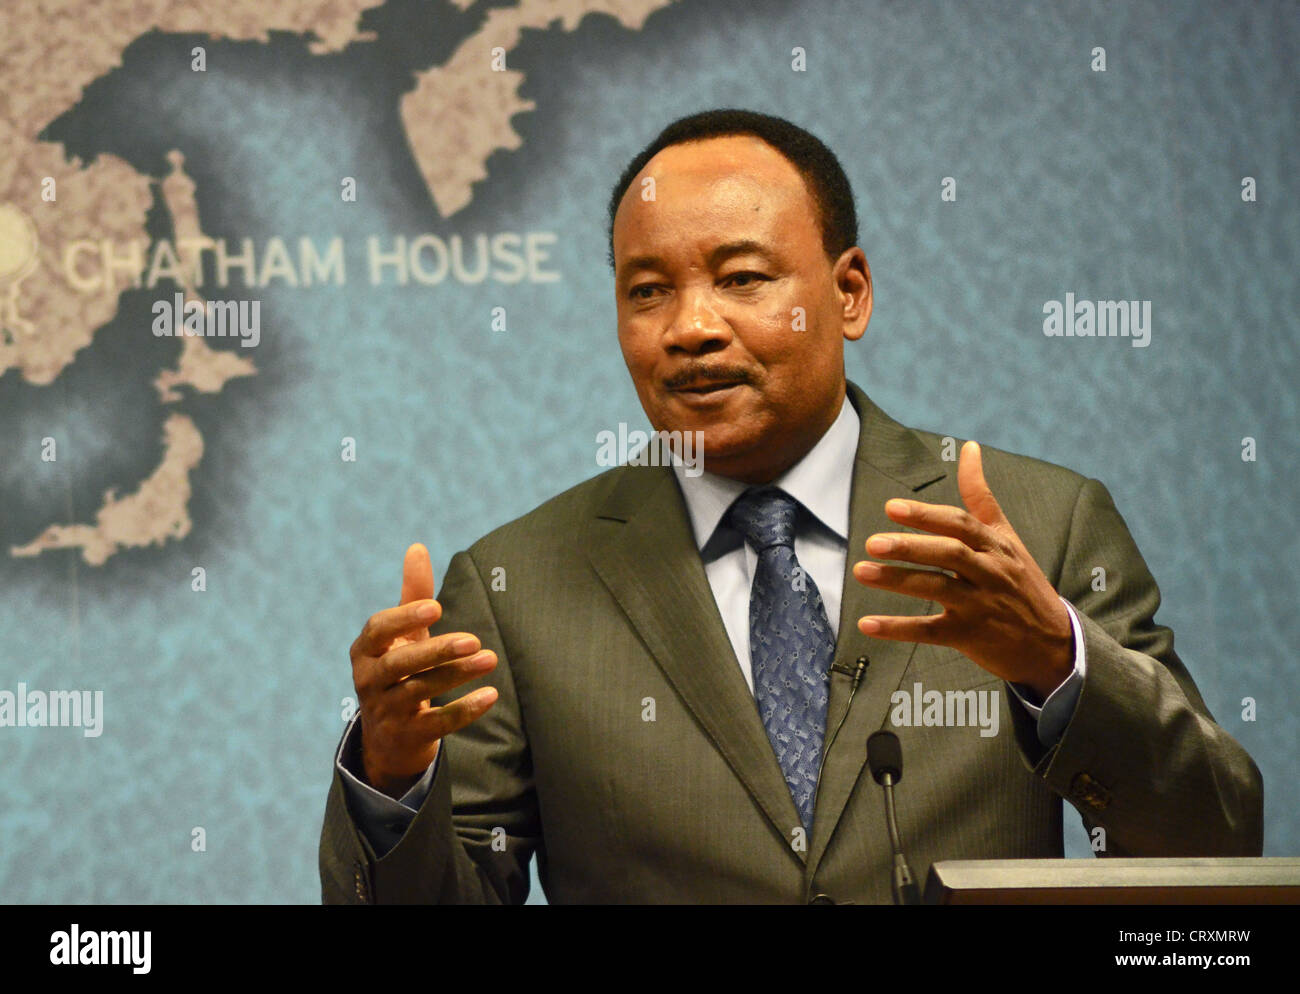 President of Niger Mahamadou Issoufou delivering a speech at Chatham House in London - Stock Image